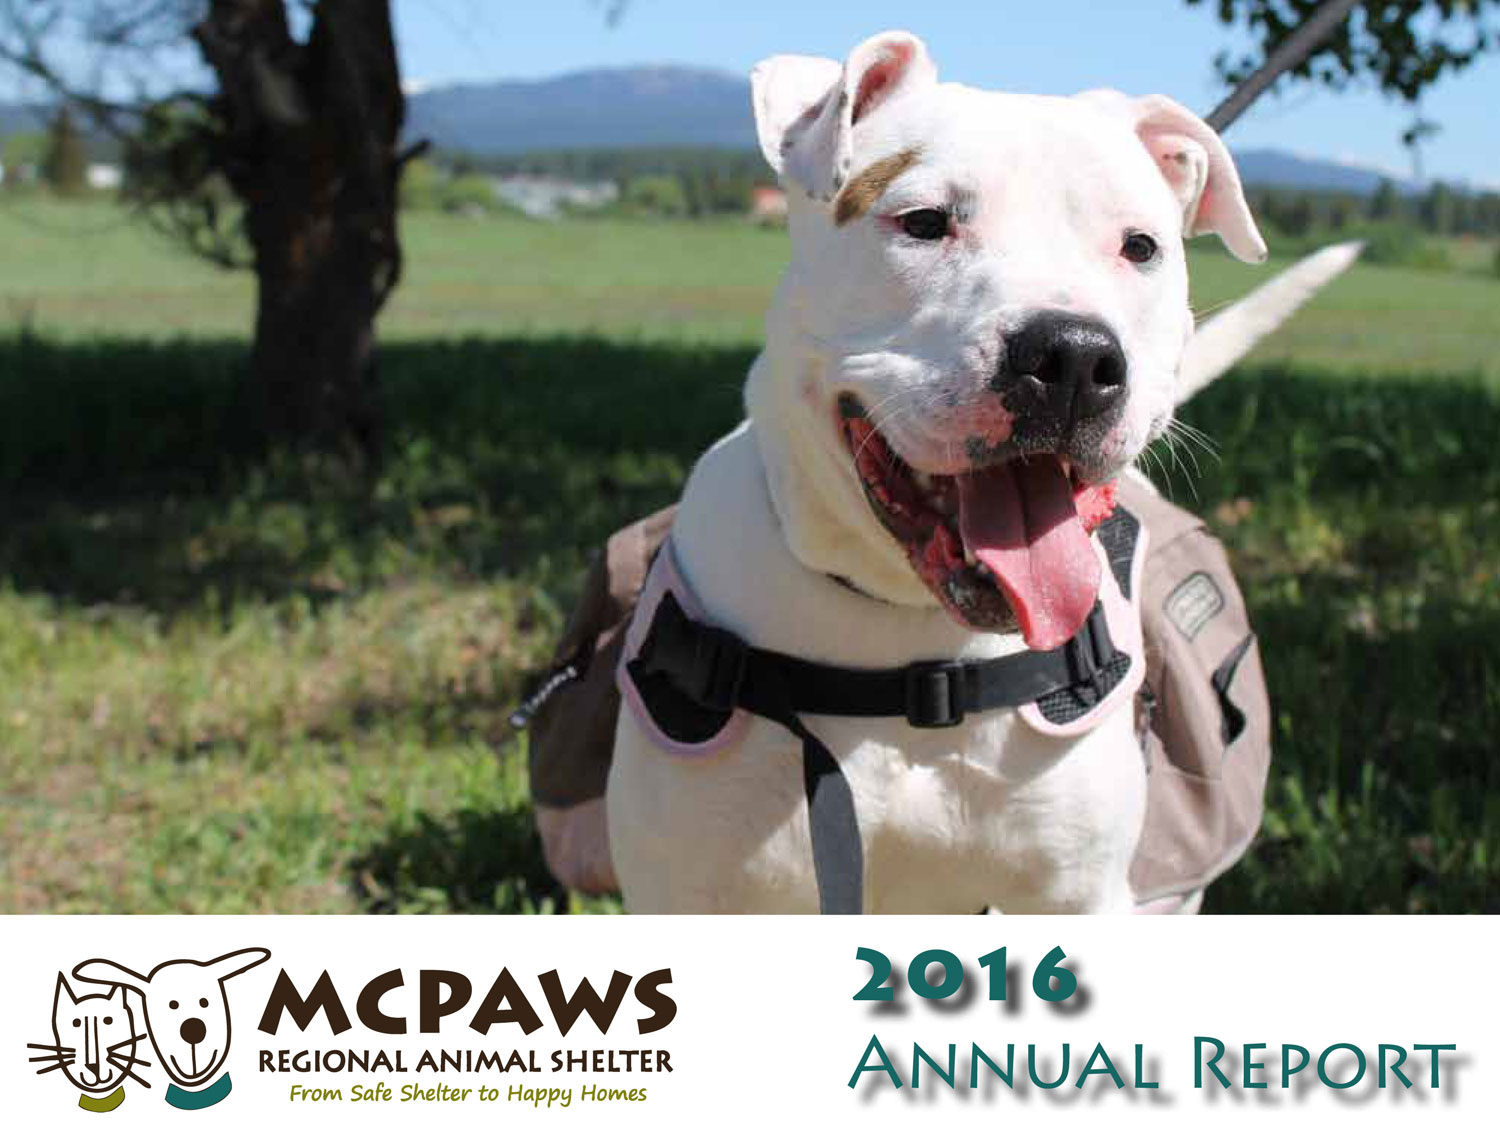 Annual Report & Financial Info - MCPAWS Regional Animal Shelter